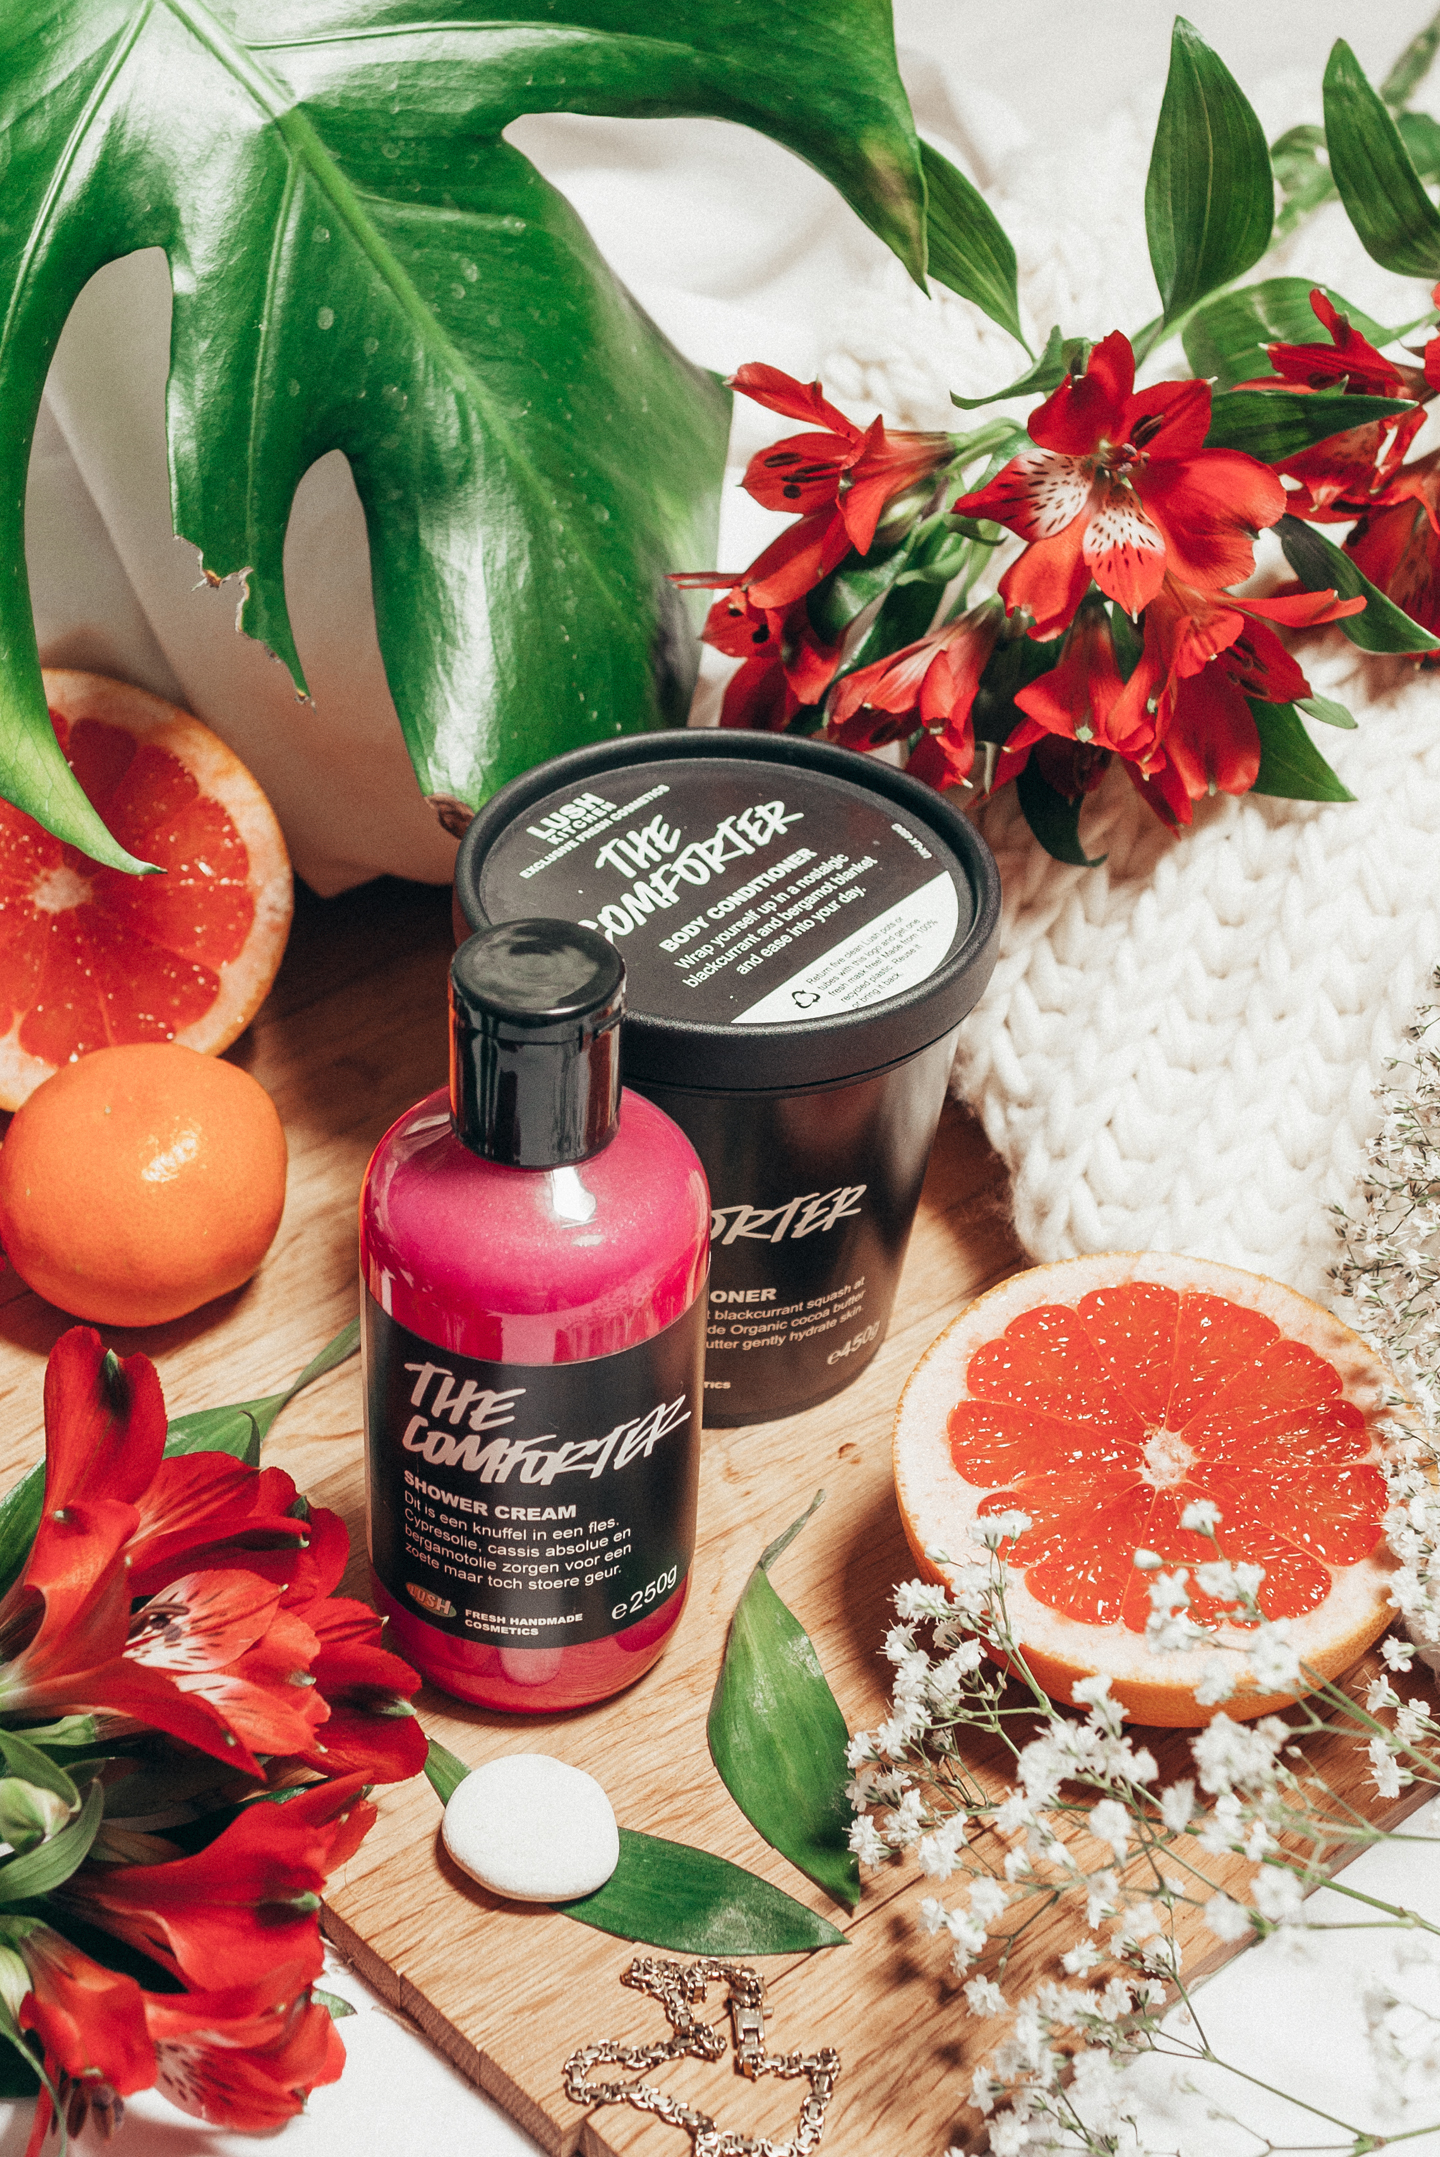 Lush The Comforter Shower Cream & Body Conditioner